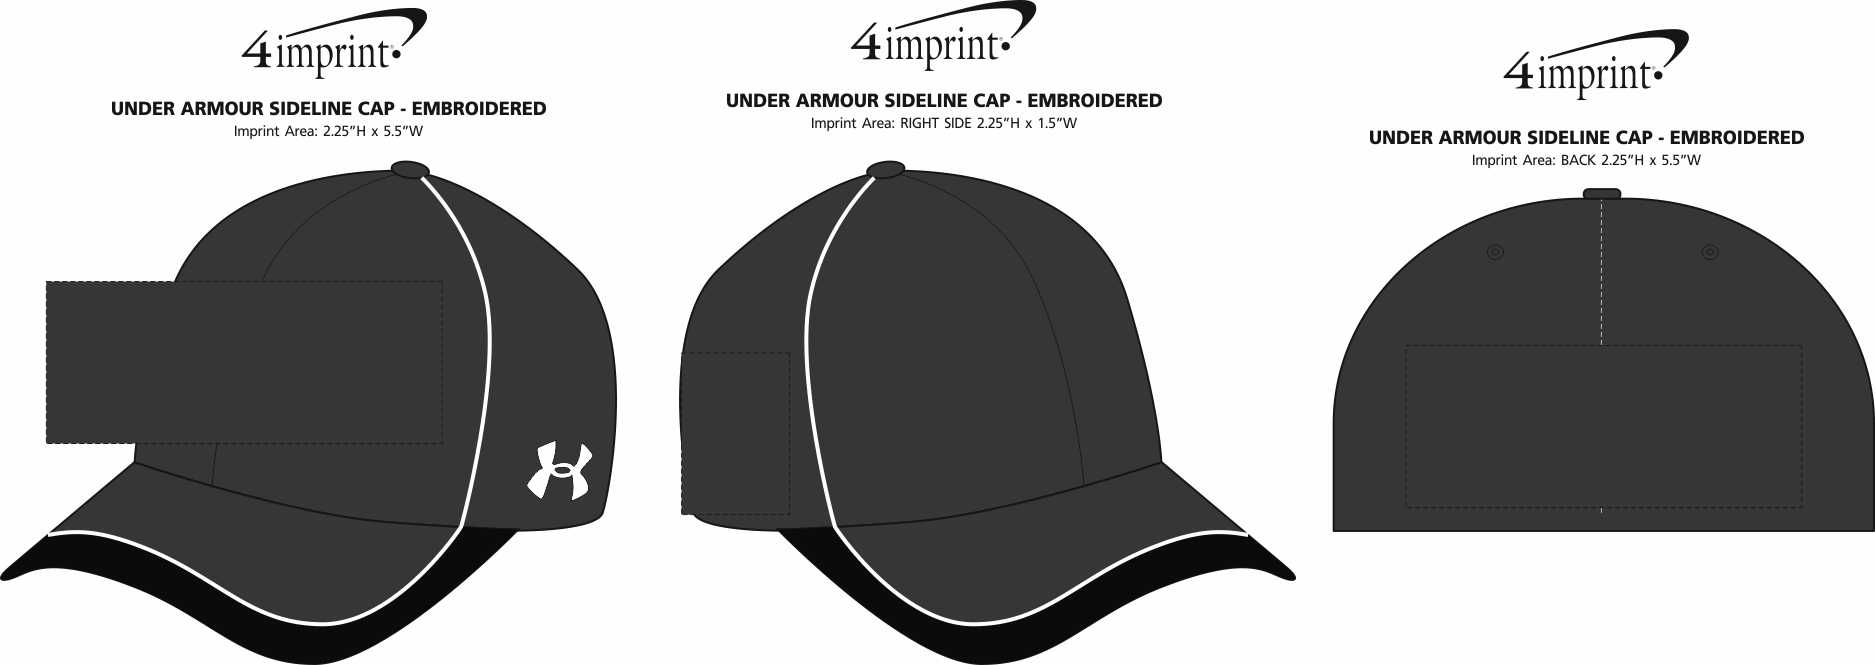 8a9f1325acf 4imprint.ca  Under Armour Sideline Cap - Embroidered C134980-E